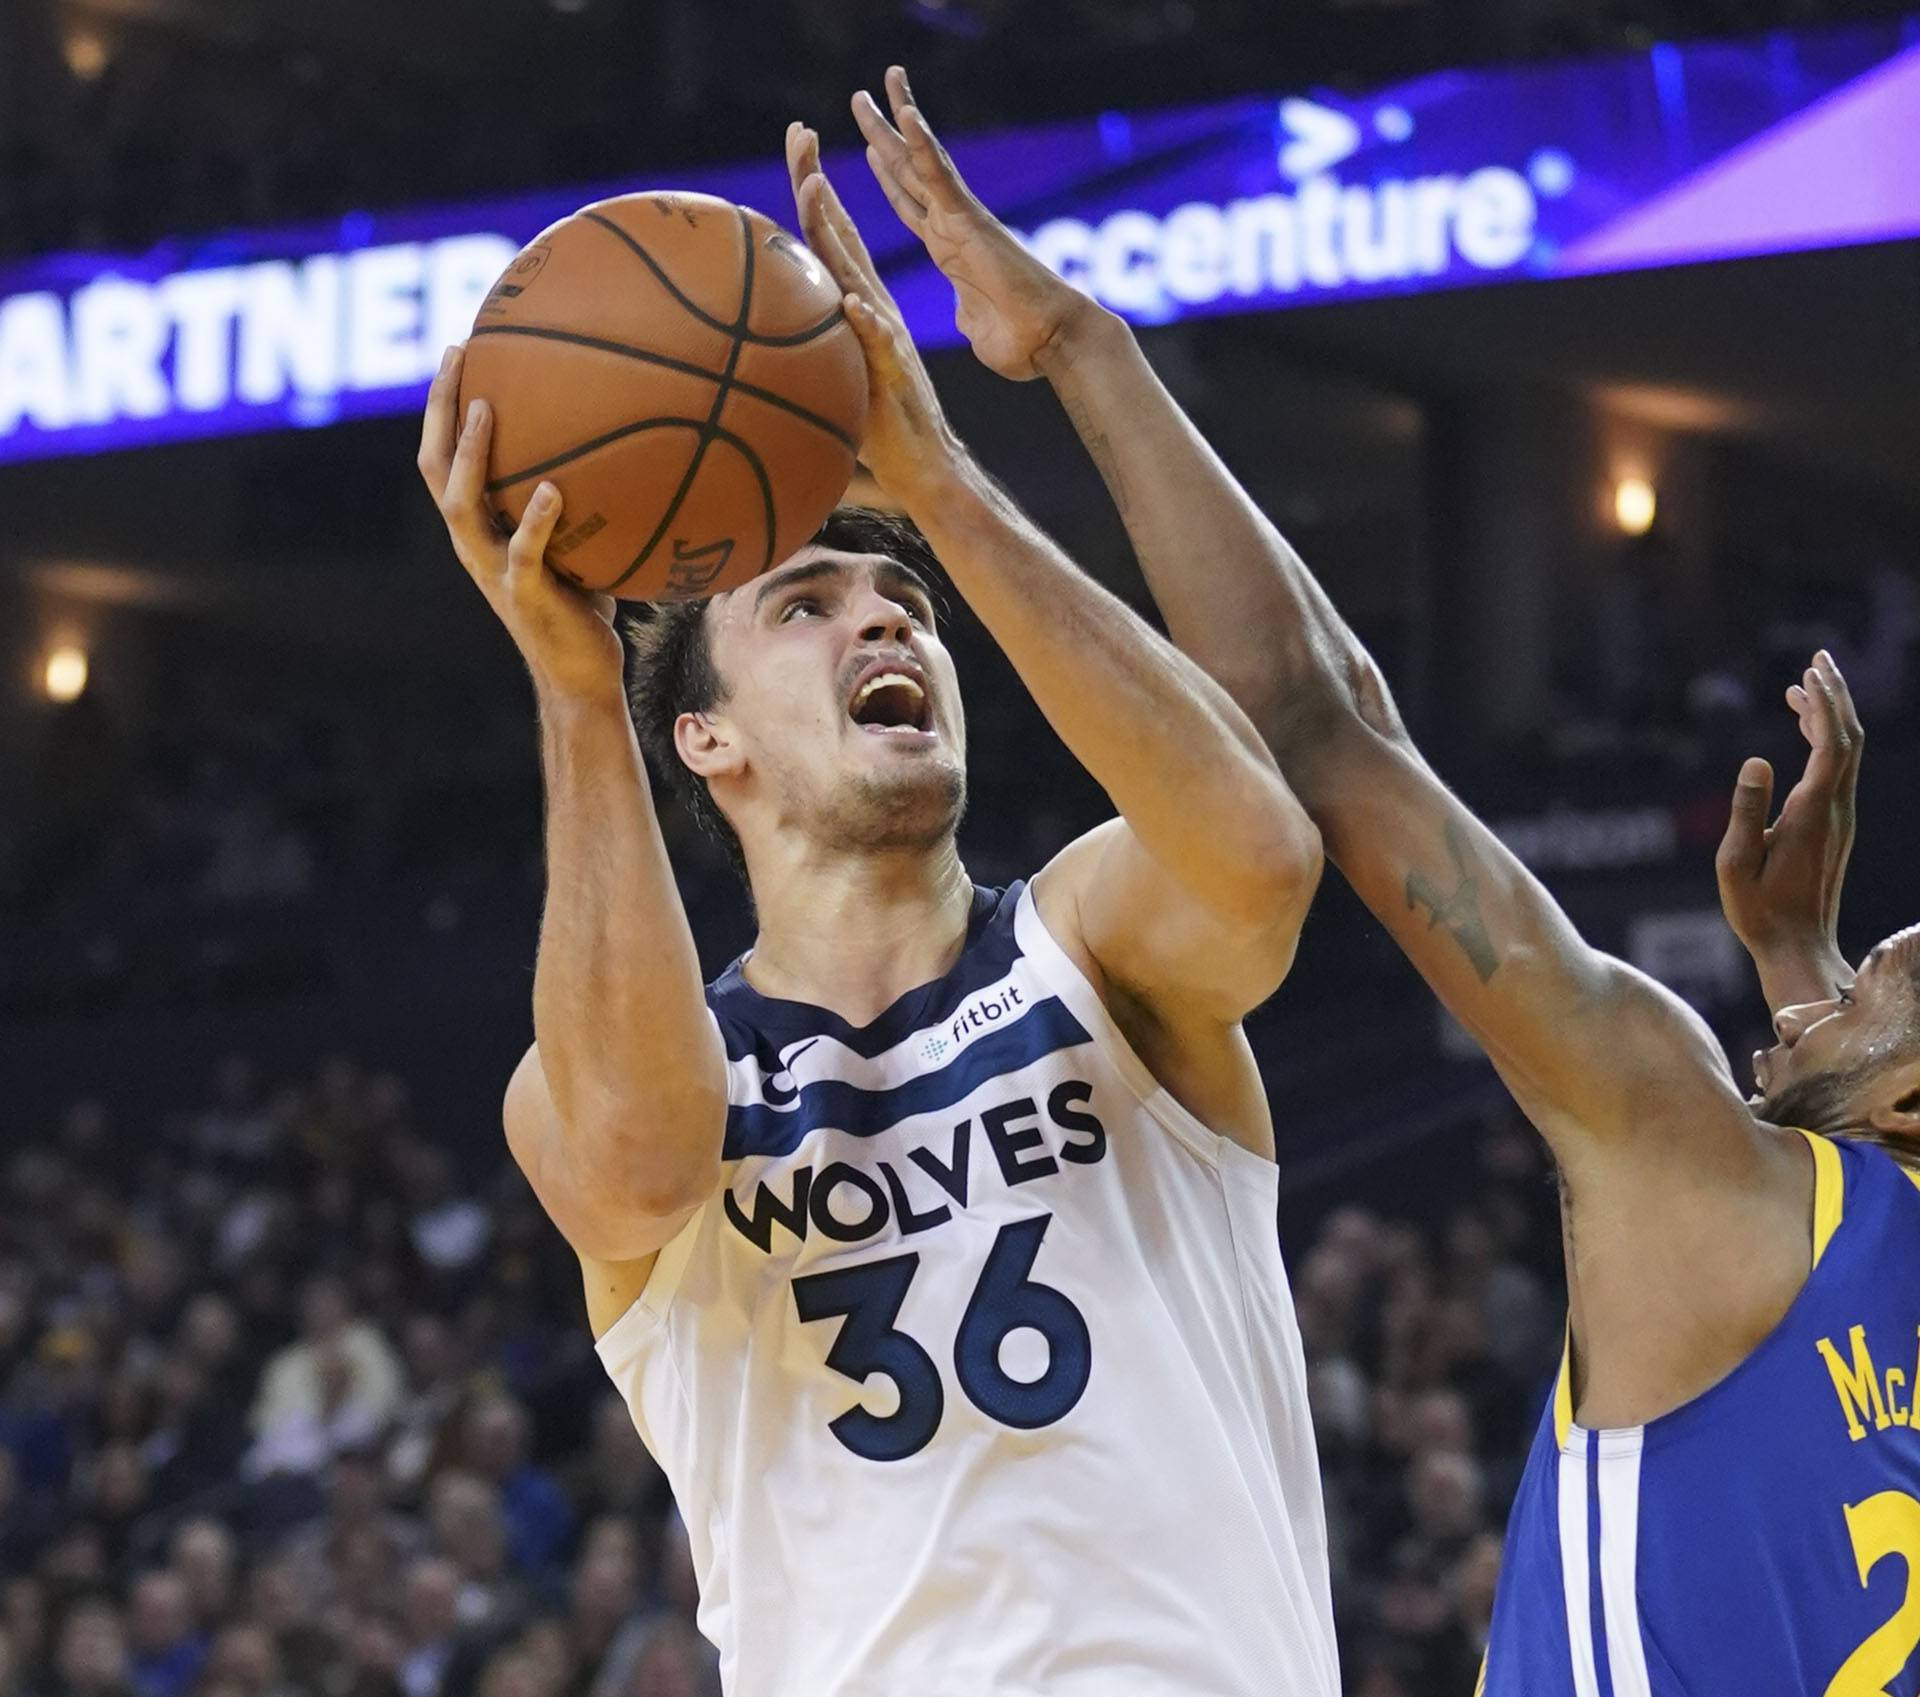 NBA: Minnesota Timberwolves at Golden State Warriors